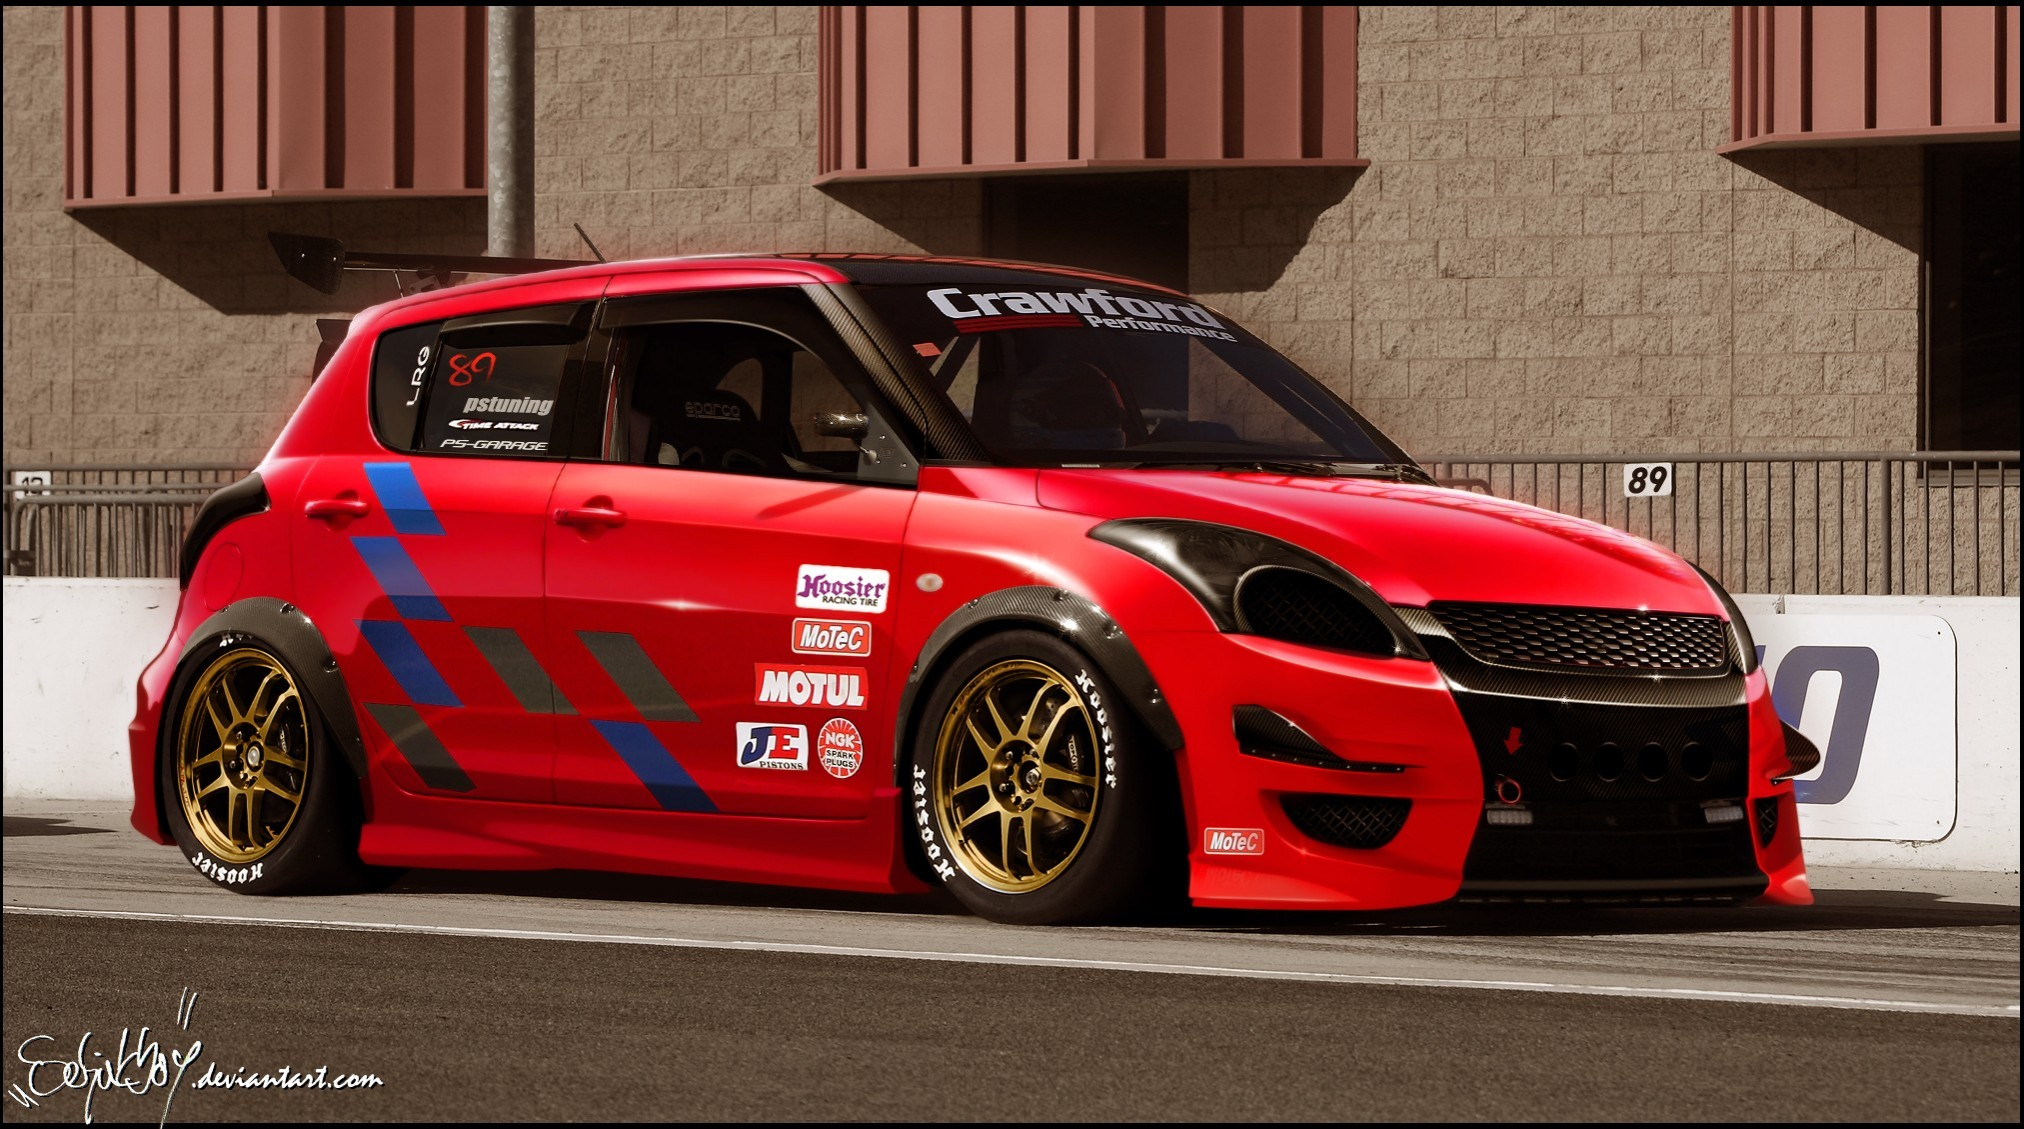 Cars tuning 3d suzuki swift wallpaper allwallpaper 6962 pc en cars tuning 3d suzuki swift wallpaper voltagebd Images